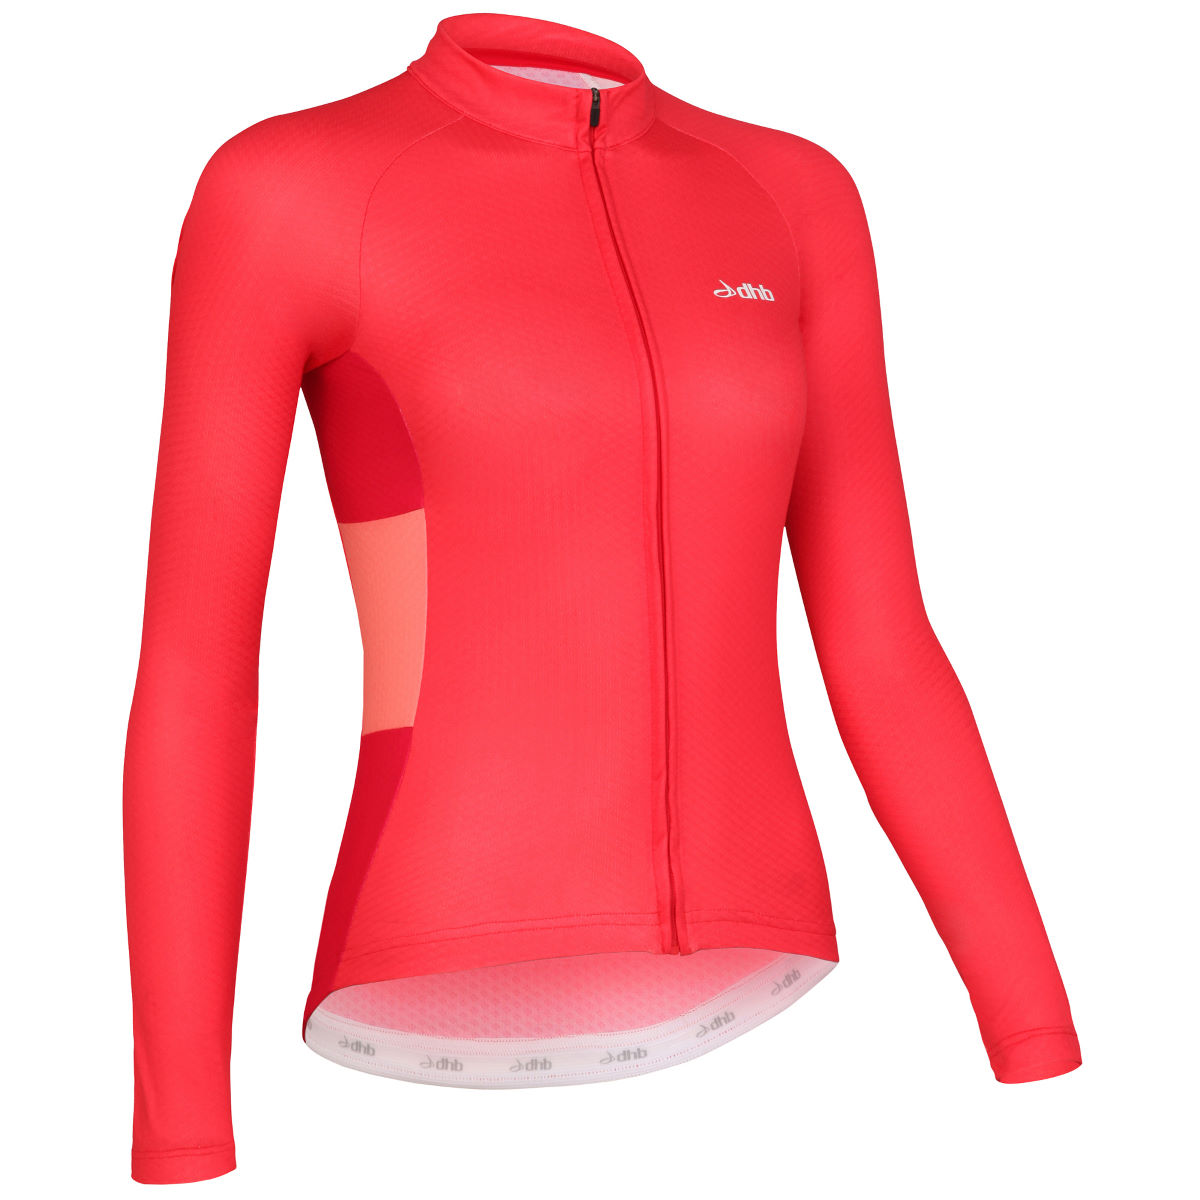 Maillot Femme dhb Aeron Sportive (manches longues) - 16 UK Maillots